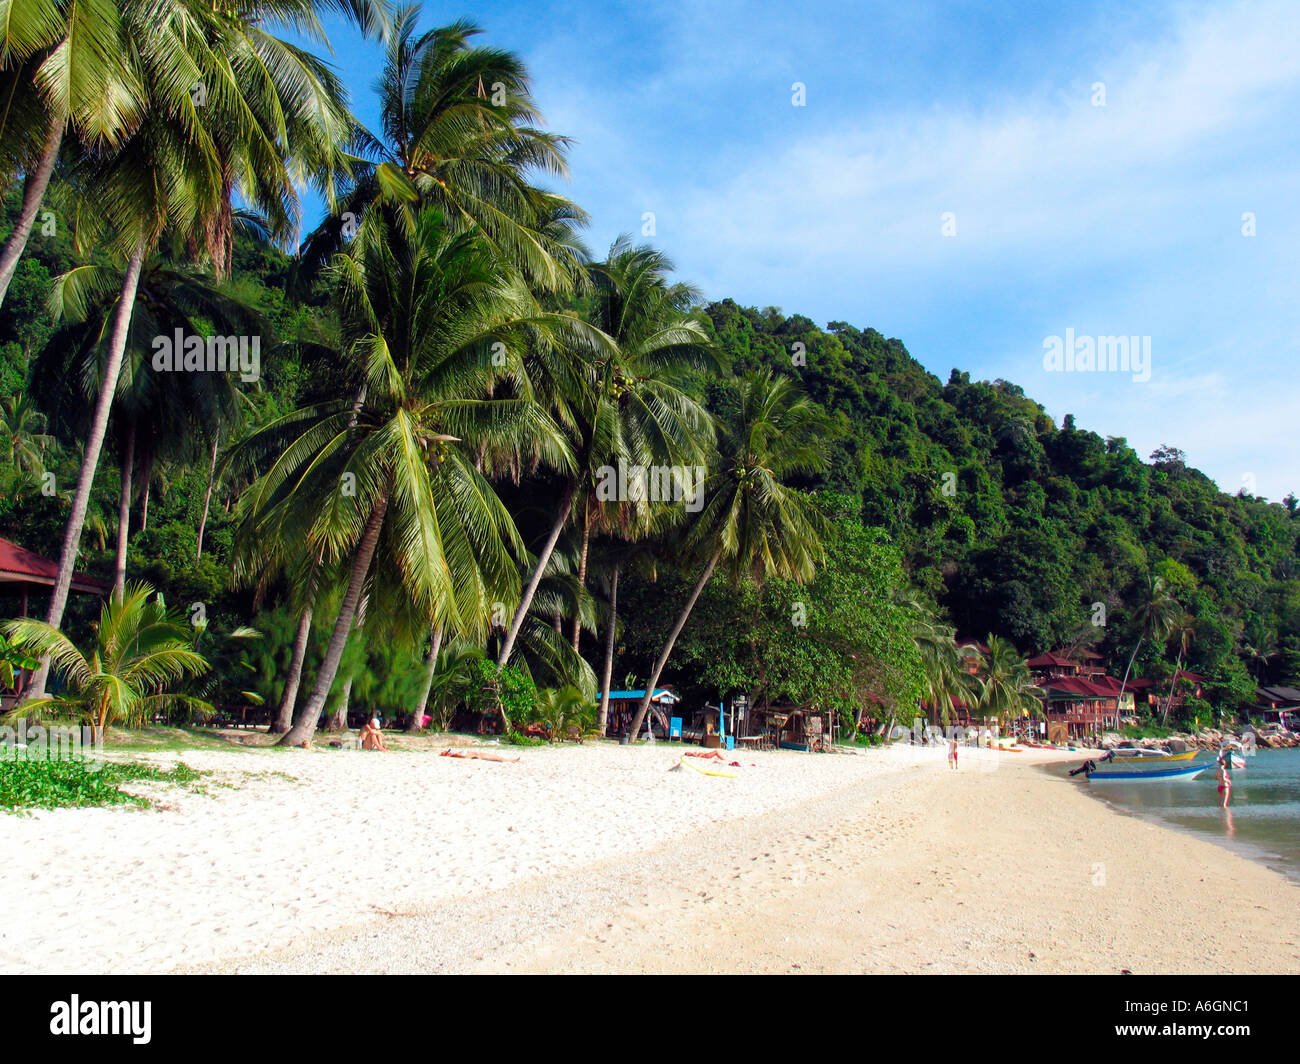 Quiet palm fringed beach Perhentian Islands Malaysia - Stock Image